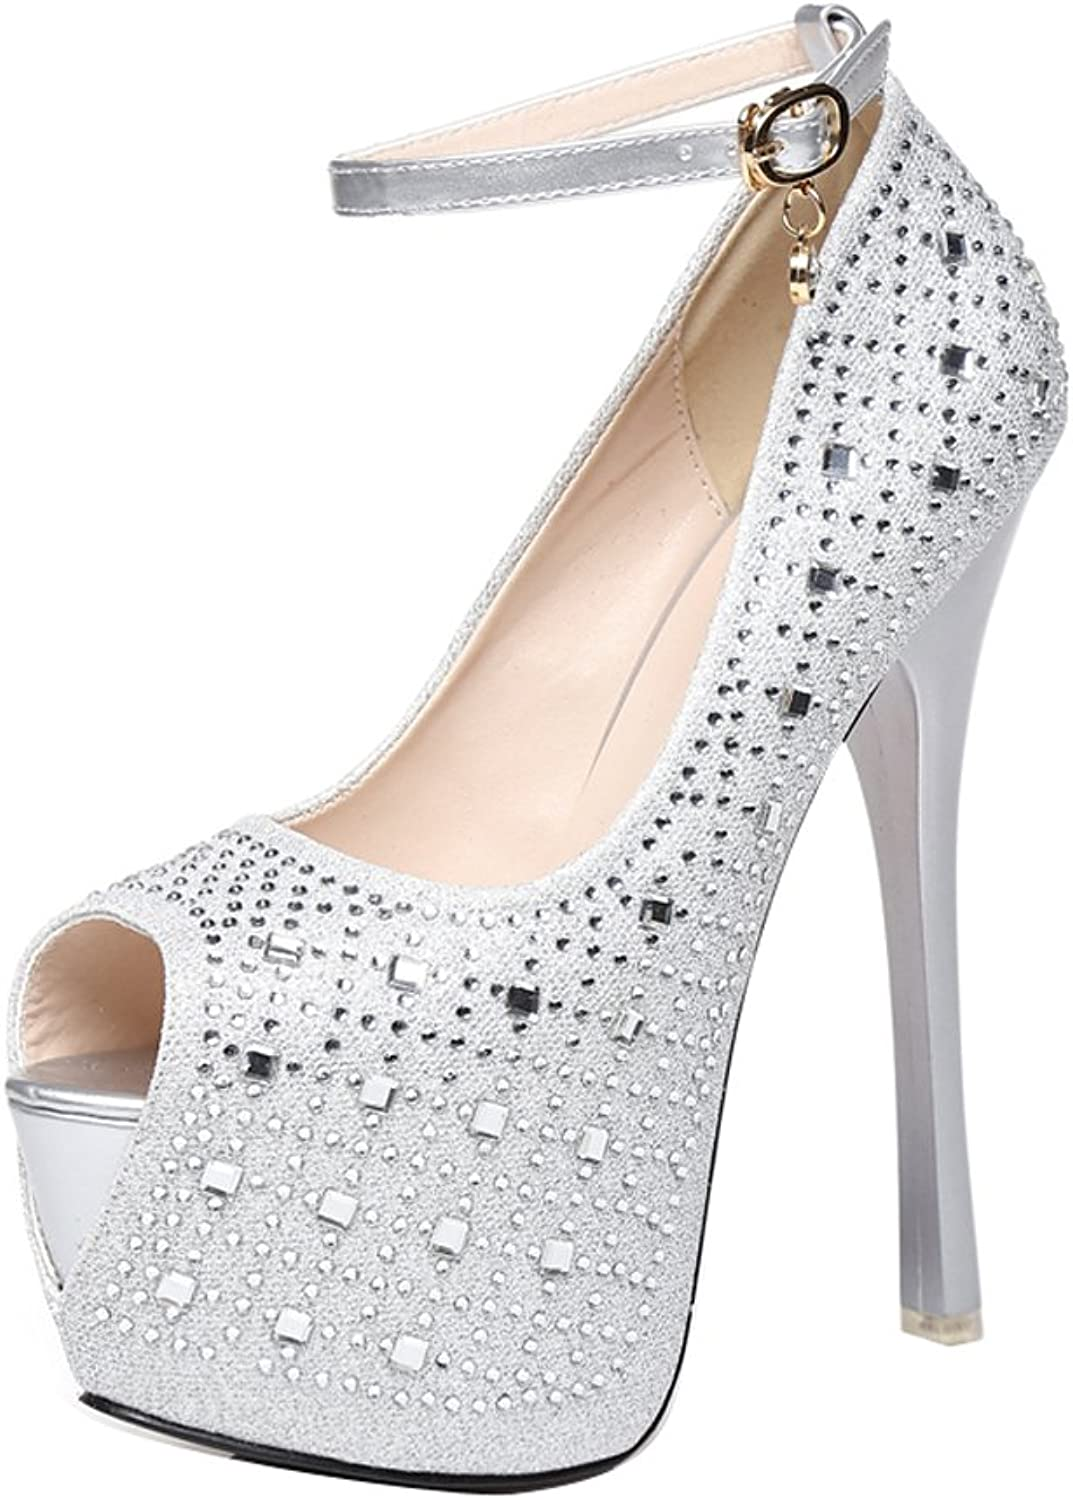 1TO9 Womens Adjustable-Strap Studded Platform Peep-Toe Silver Urethane Pumps shoes - 6.5 B(M) US